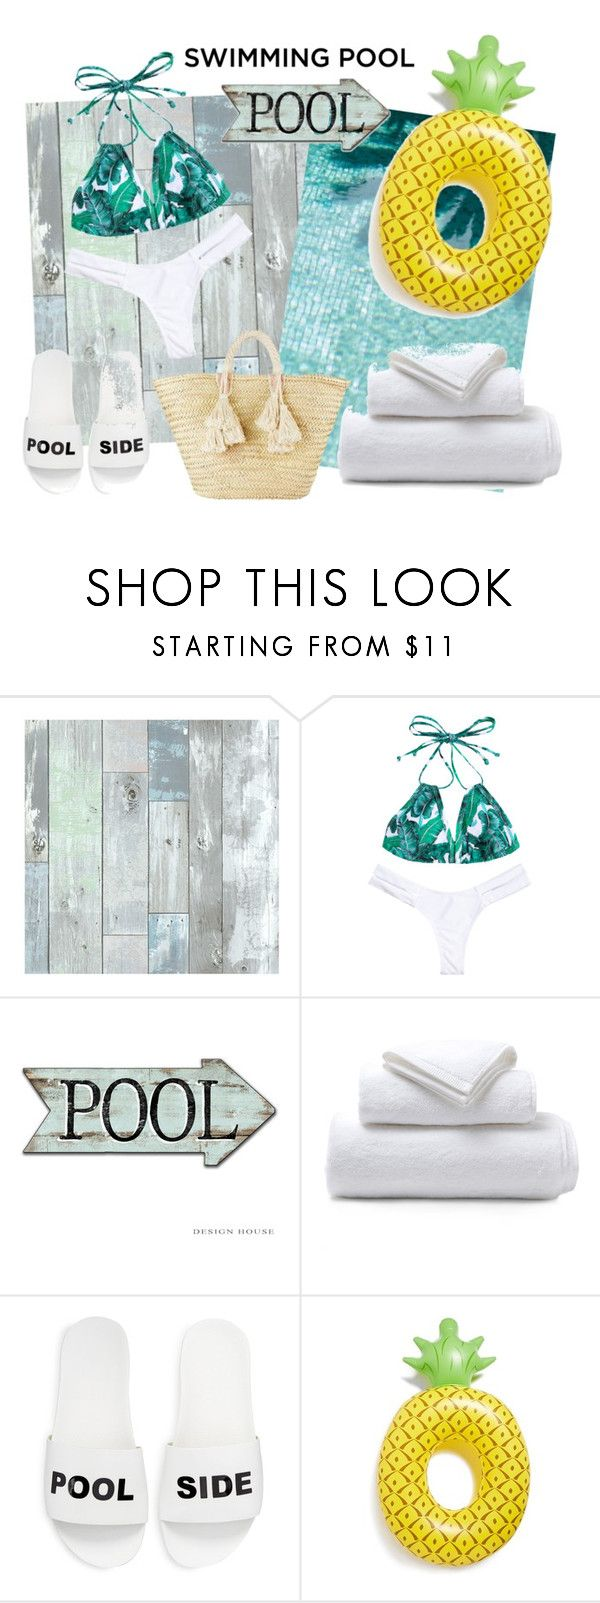 """""""Unbenannt #97"""" by nora-ari ❤ liked on Polyvore featuring interior, interiors, interior design, home, home decor, interior decorating, Wall Pops!, Pigeon & Poodle, Schutz and Big Mouth"""